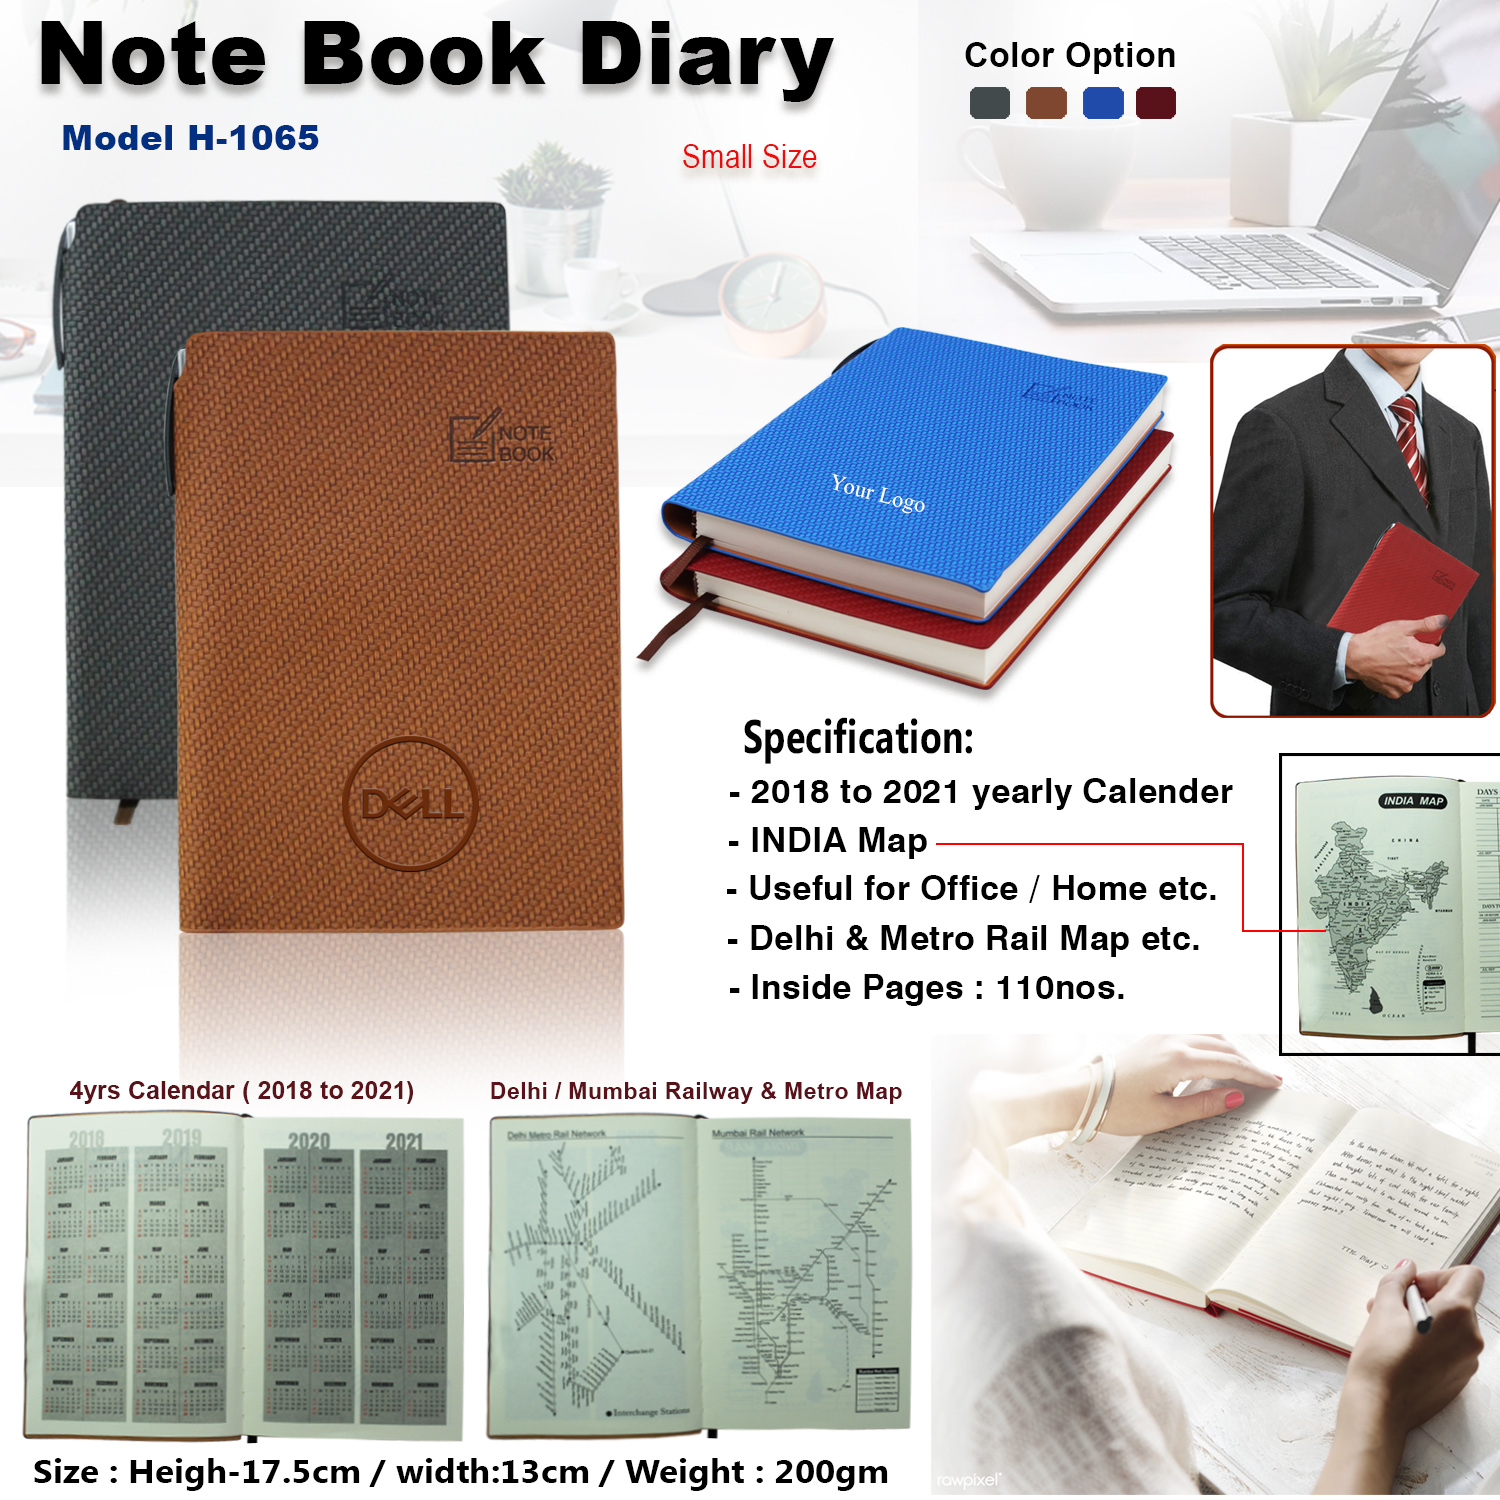 Note Book Office Diary H-1065